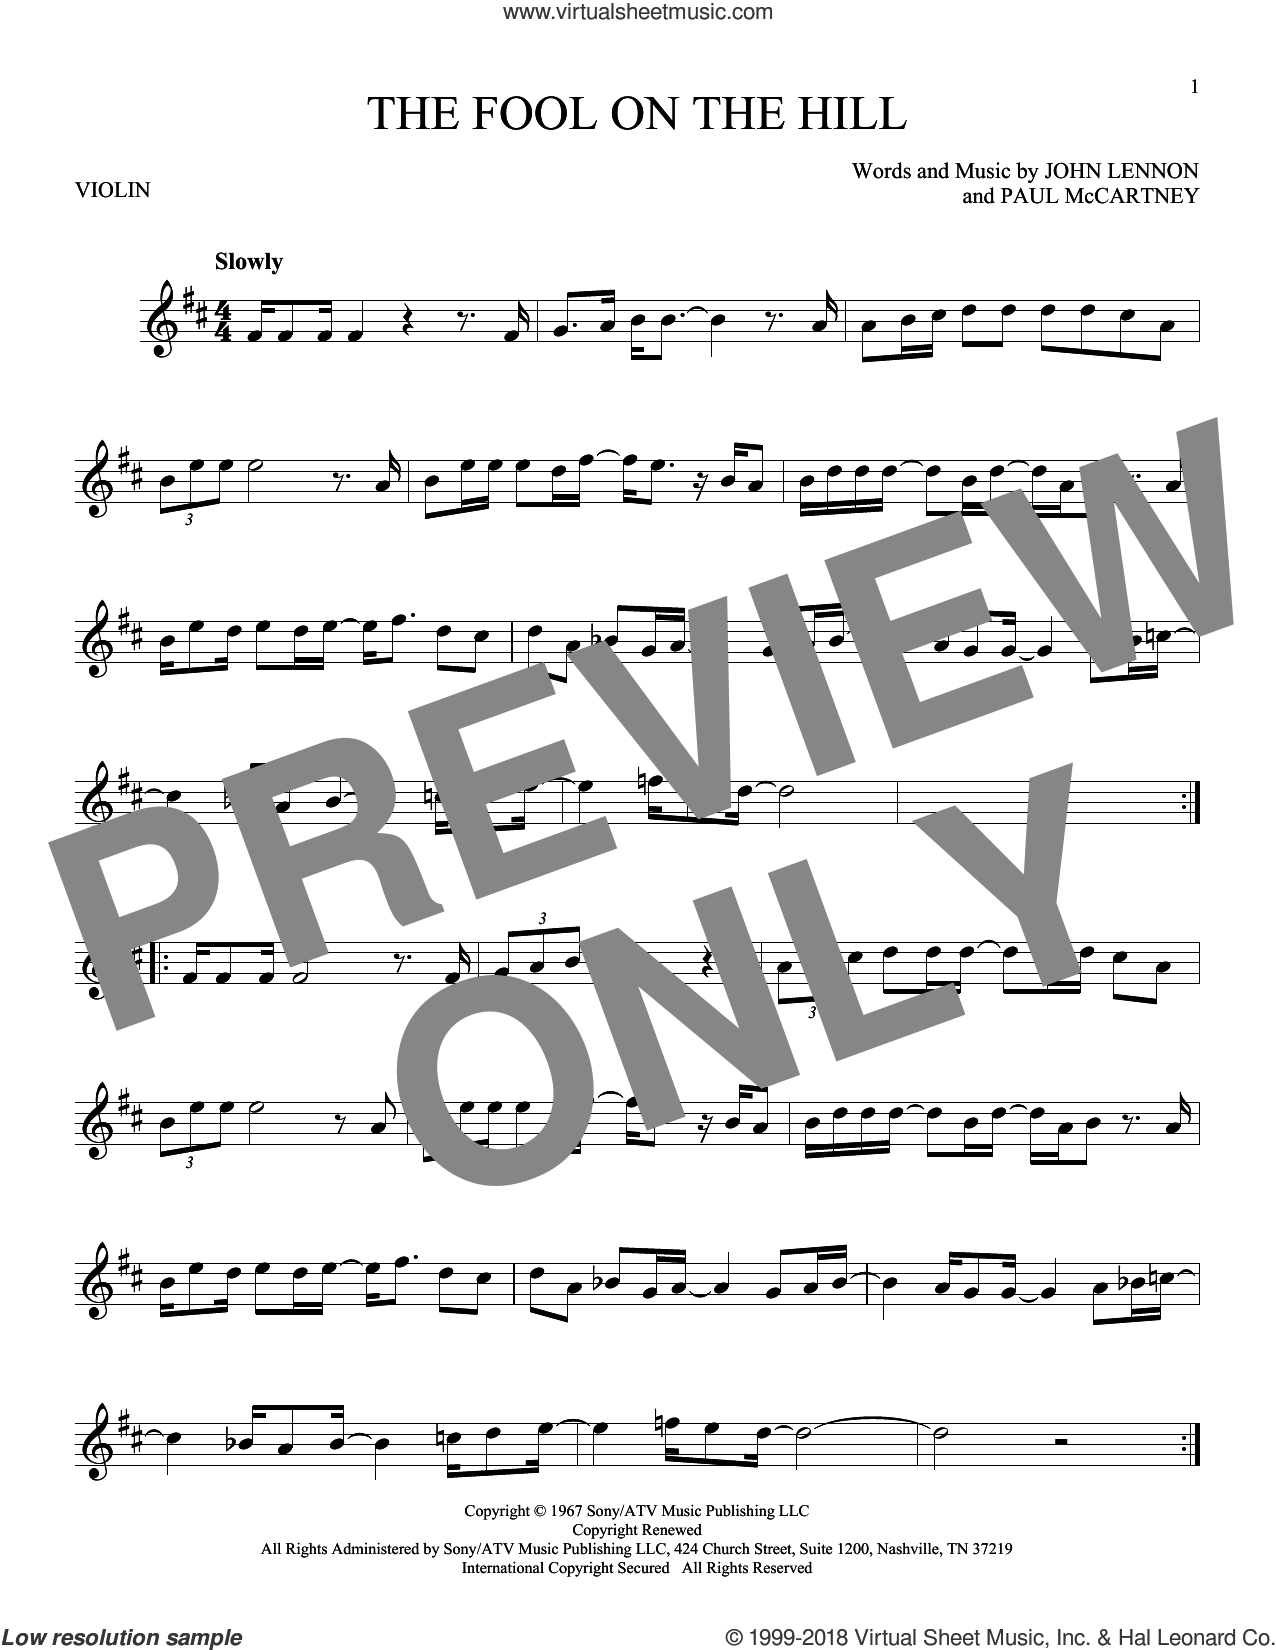 The Fool On The Hill sheet music for violin solo by The Beatles, John Lennon and Paul McCartney, intermediate skill level